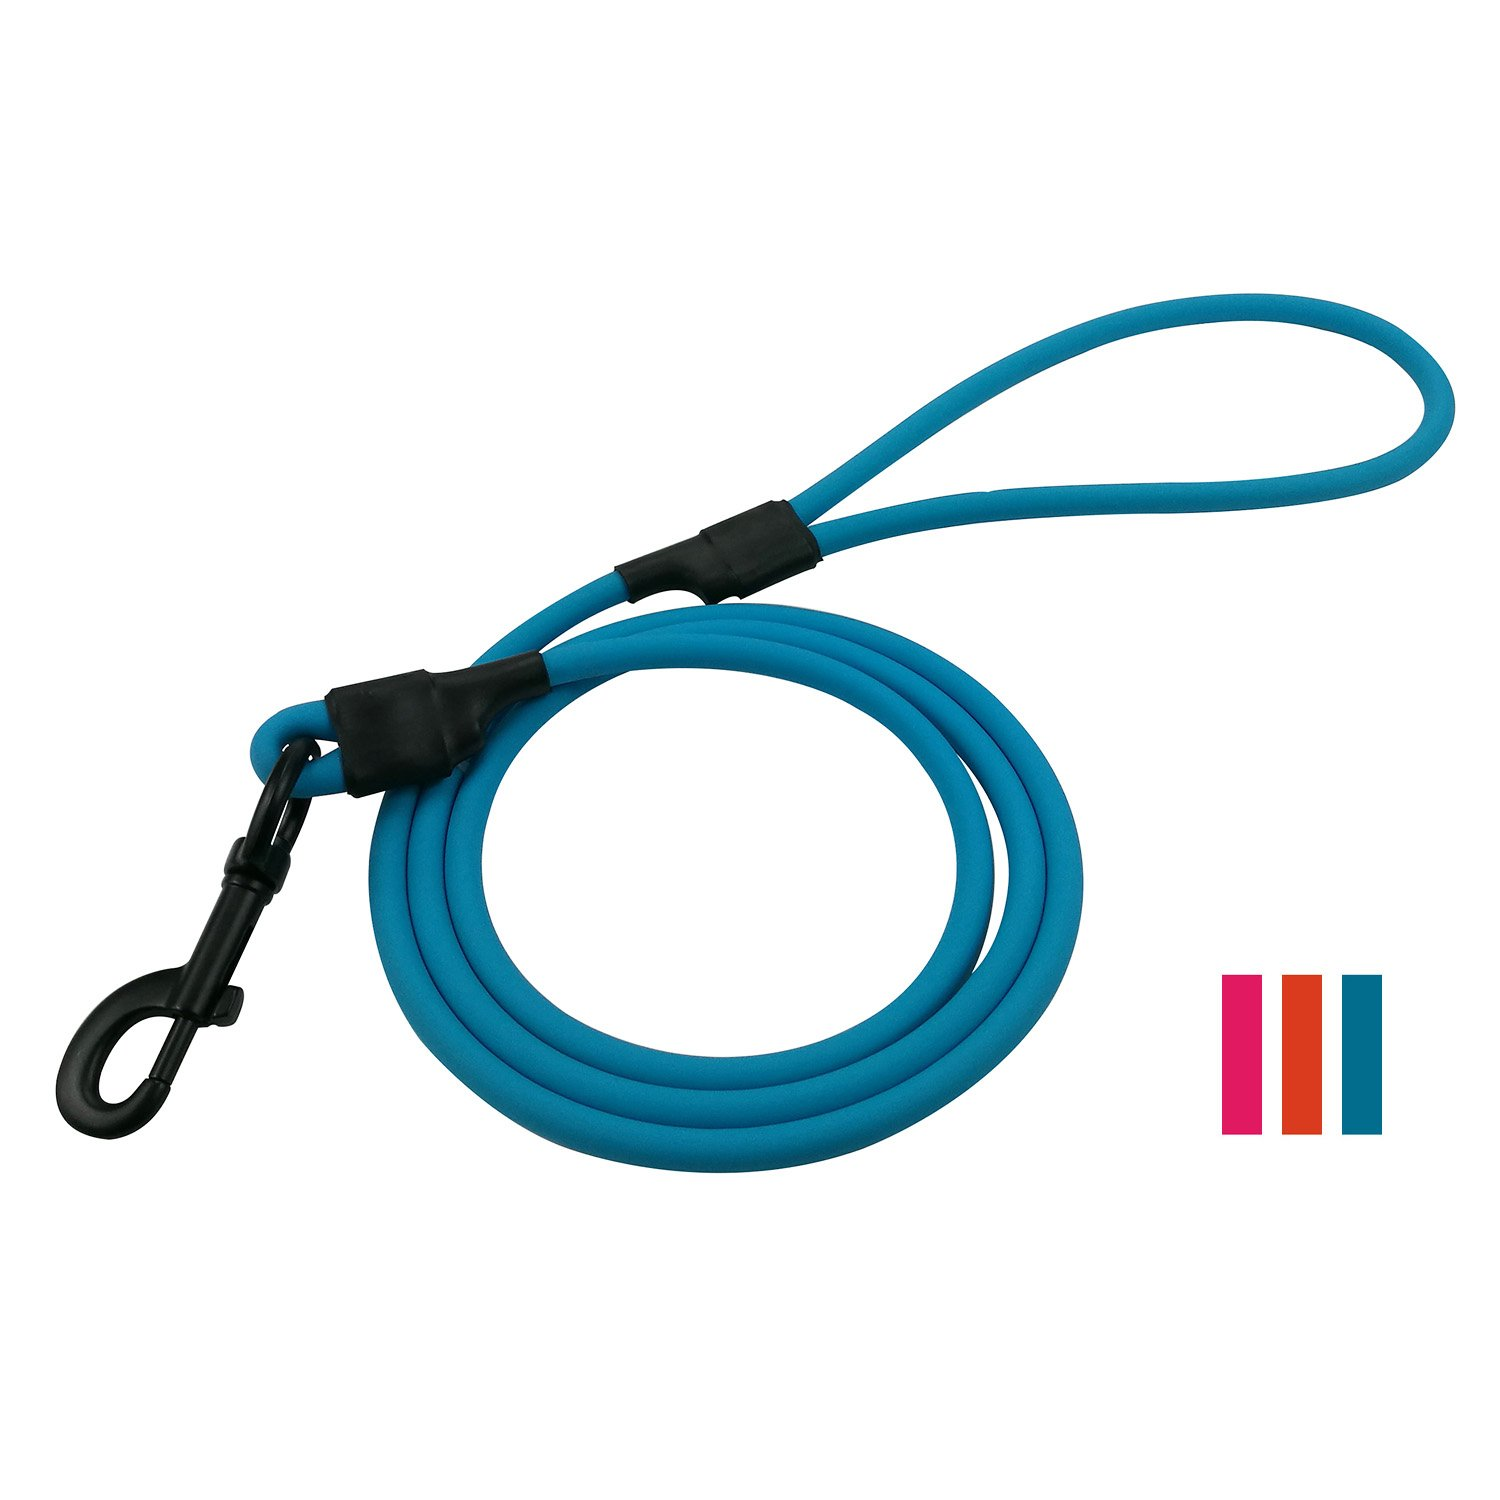 SACRONS-Waterproof Dog Leash/PVE Contains High Strength Nylon Materials/Wear-Resistant and Dirty/Easy to Clean/Excellent for Outdoors & Dog Training(Small, Medium, Large Dogs)